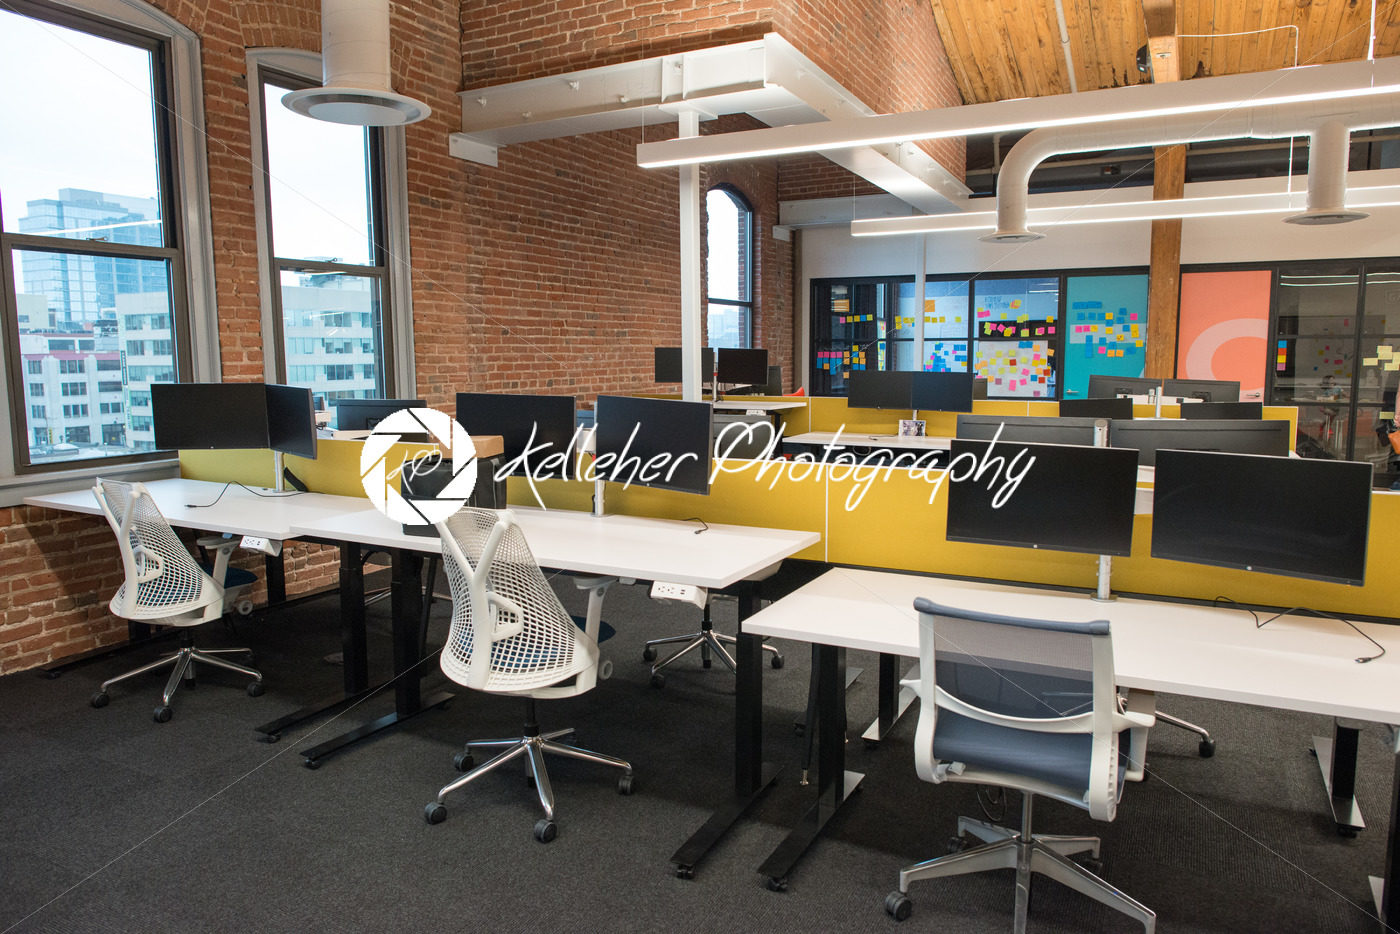 open concept office space. Trendy Modern Open Concept Loft Office Space With Big Windows, Natural Light And A Layout To Encourage Collaboration, Creativity Innovation R